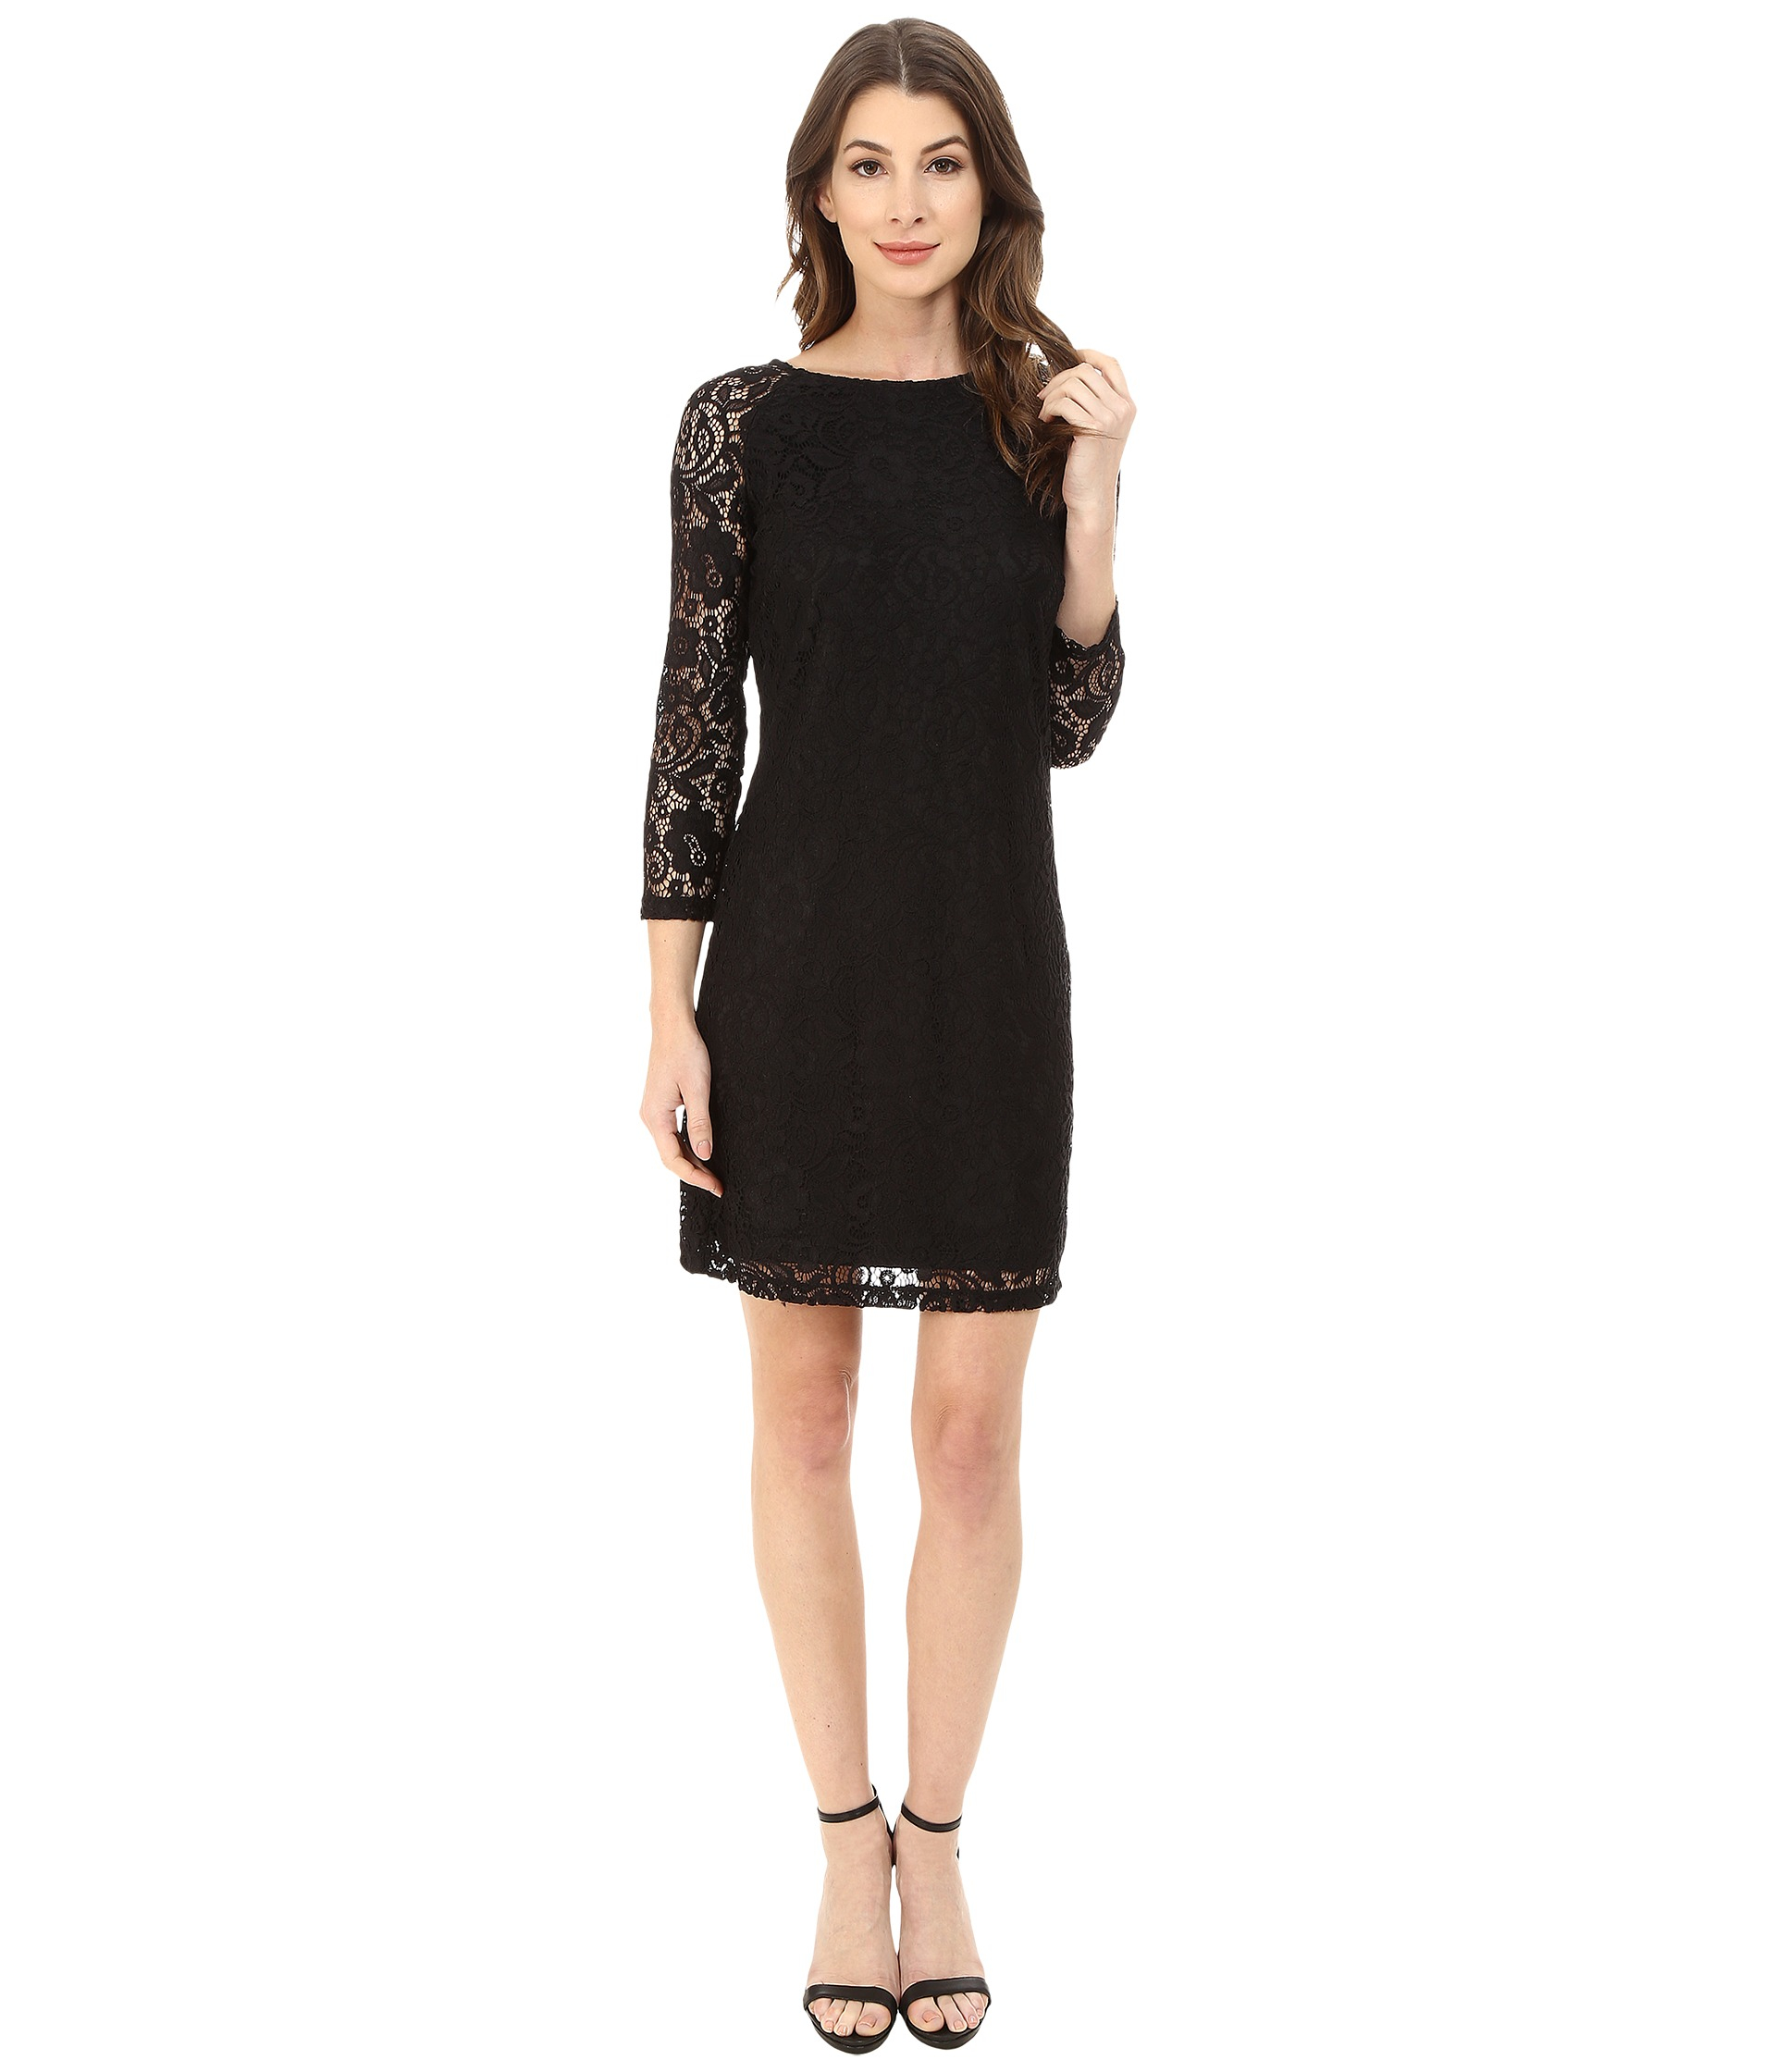 Black Lace Cocktail Dress With 34 Sleeves